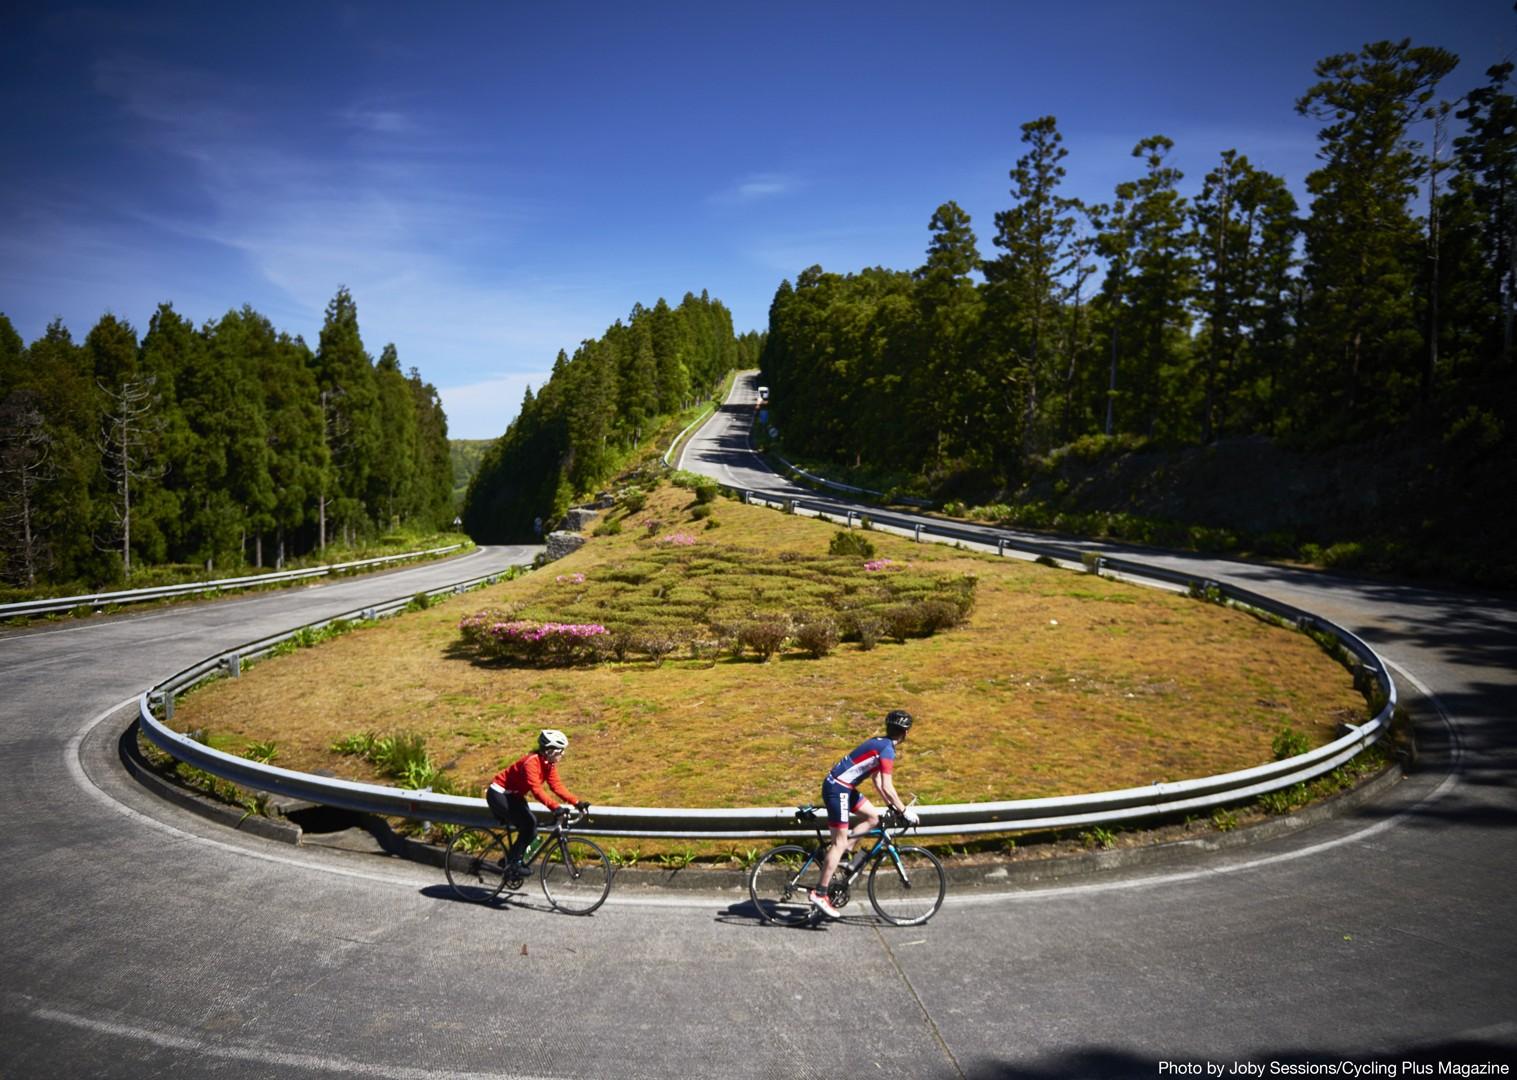 atlantic-ocean-guided-road-cycling-holiday-the-azores-lost-world-of-sao-miguel.JPG - The Azores - Lost World of Sao Miguel - Road Cycling